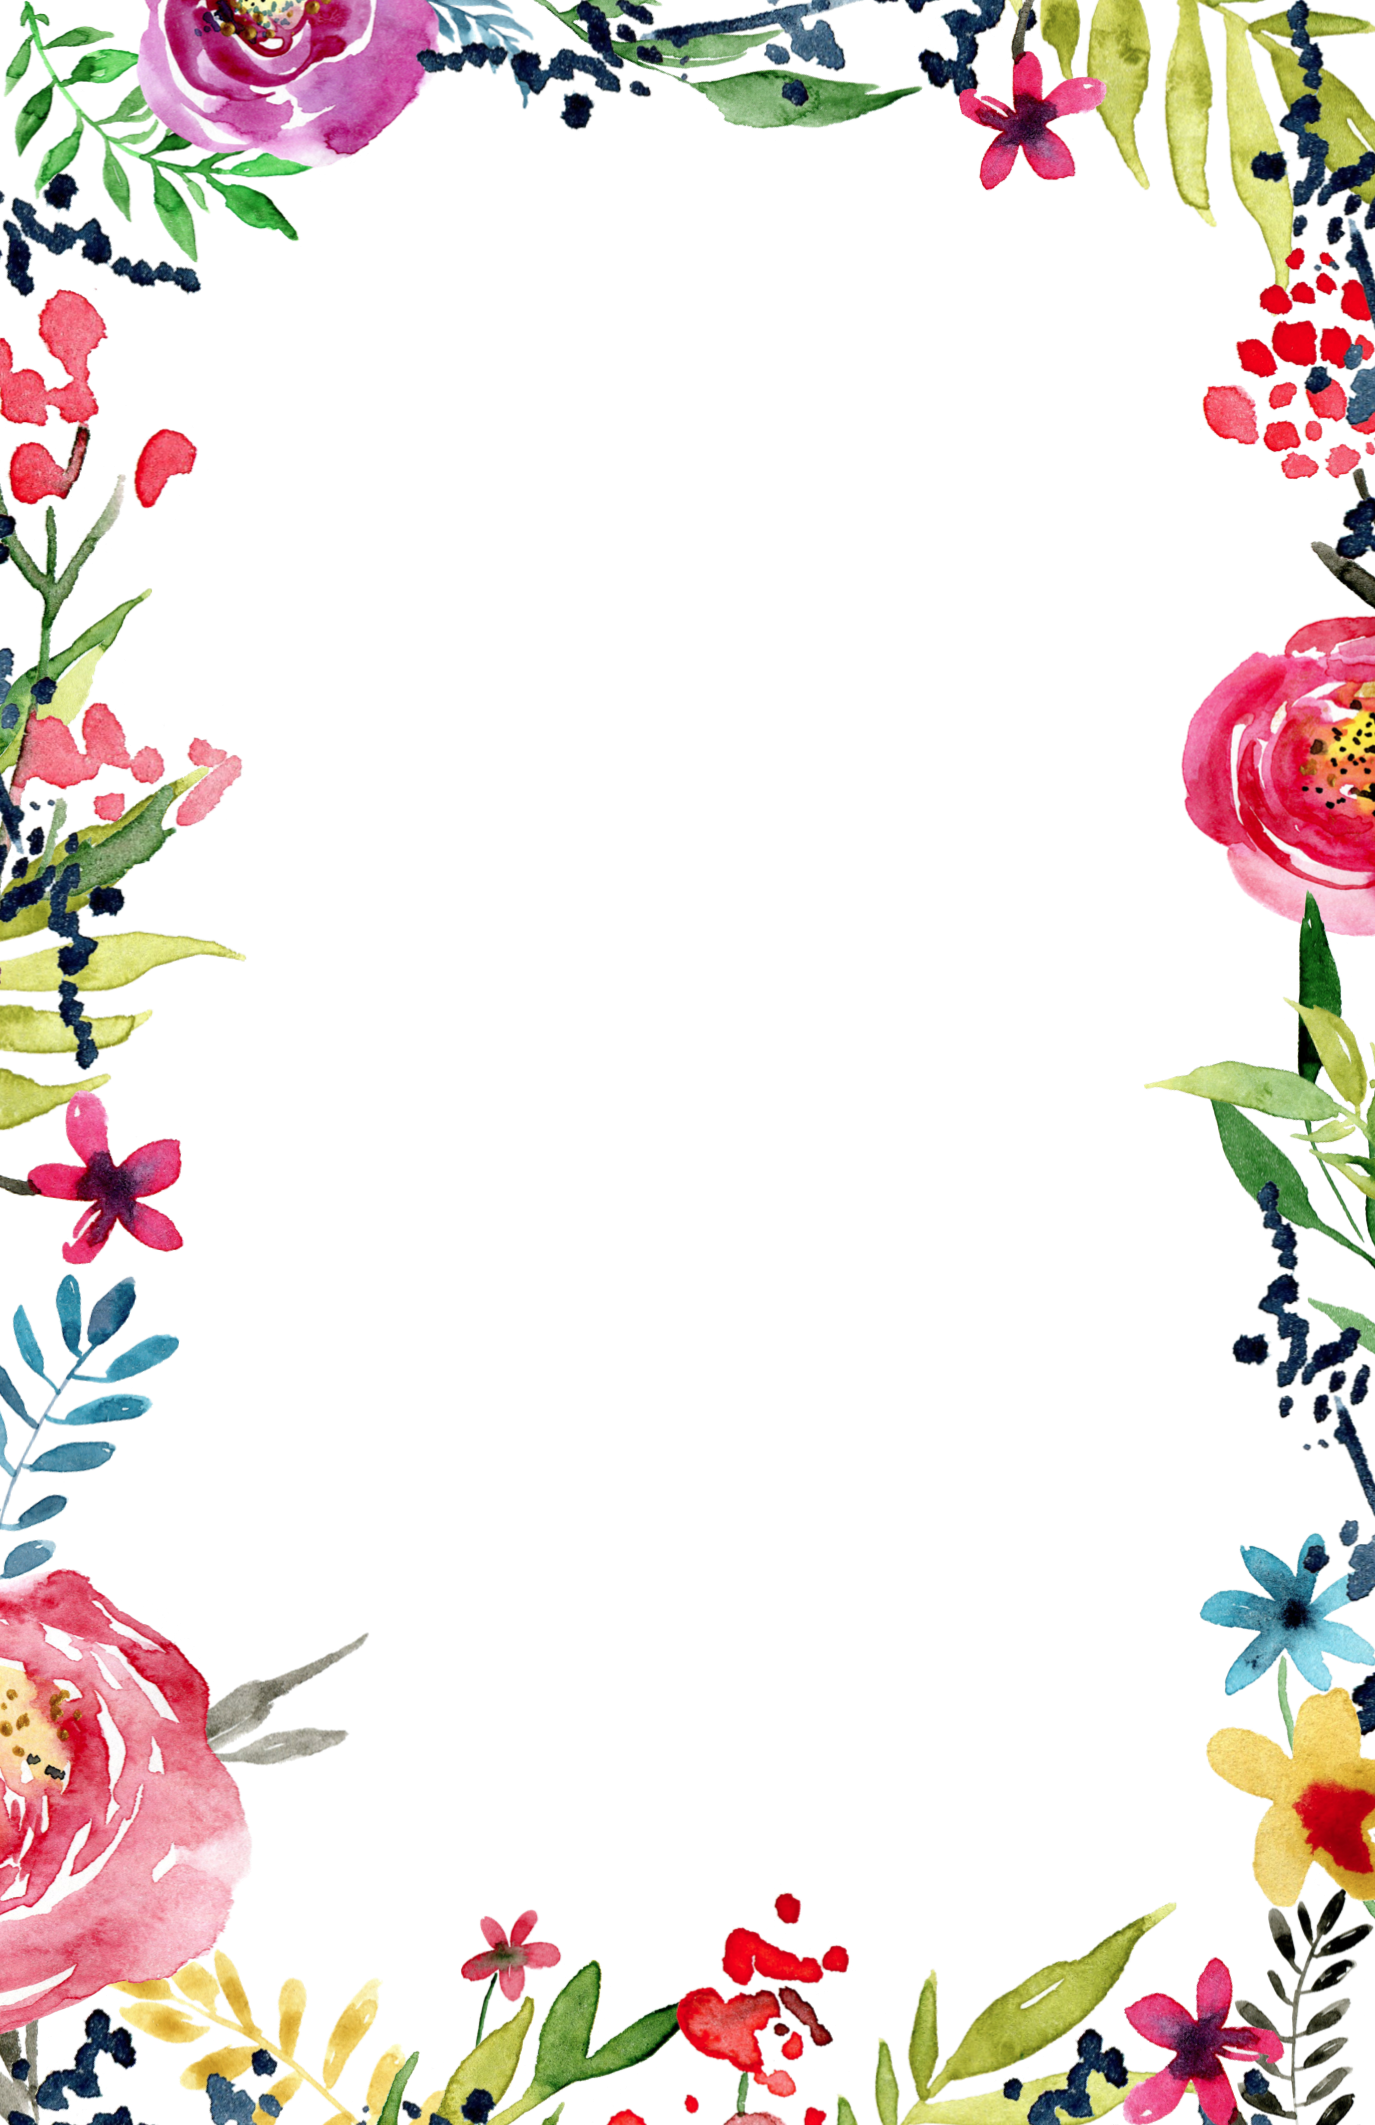 invitation clipart png - photo #43